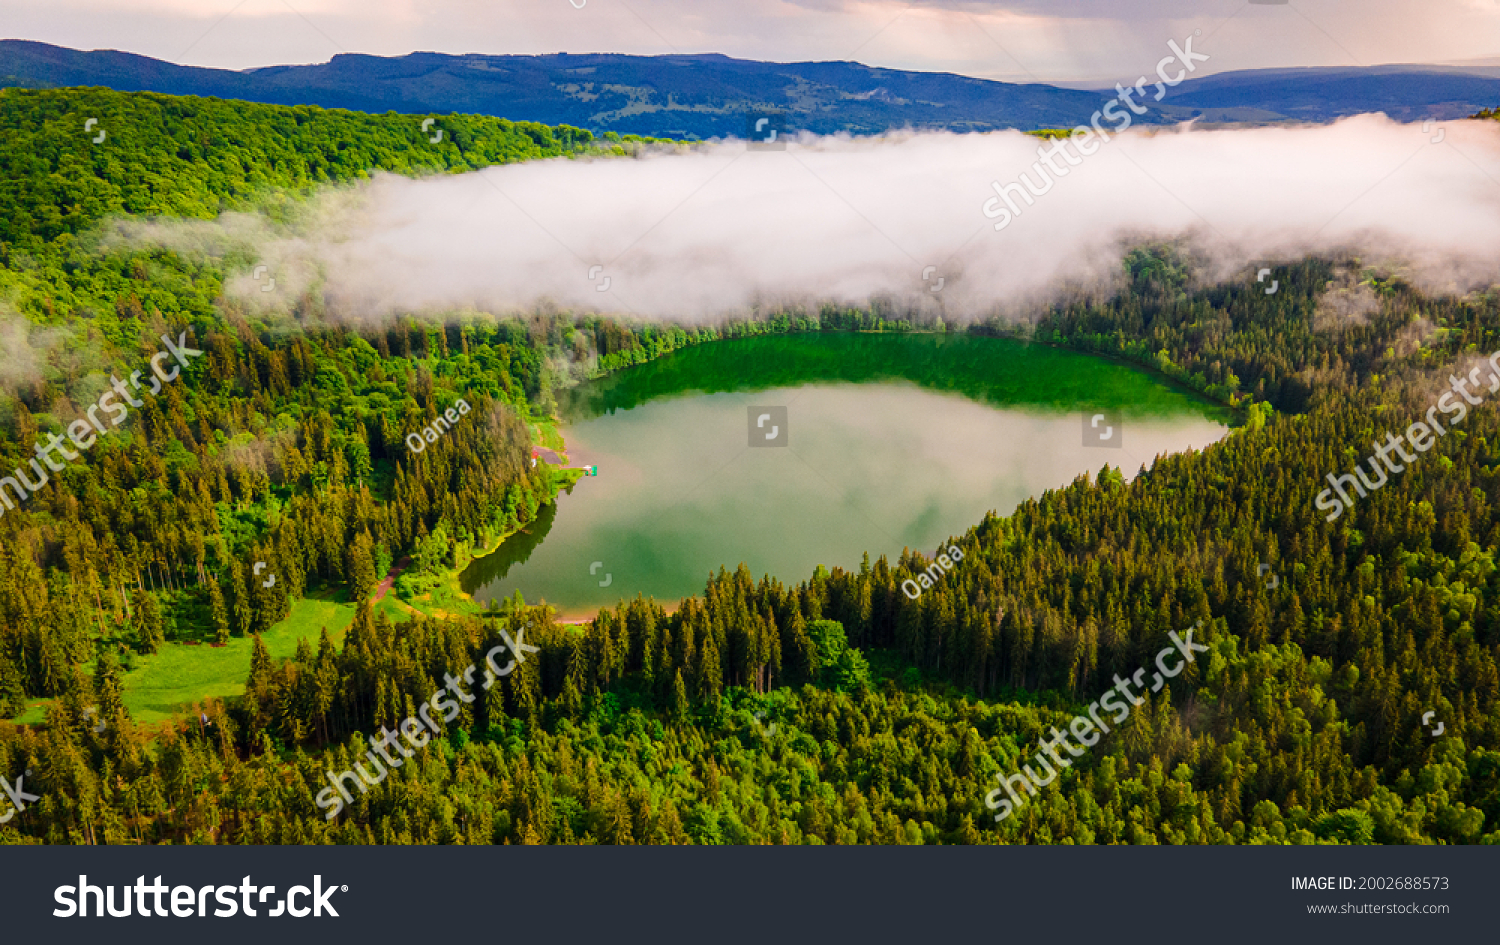 Aerial photography of Saint Ann volcanic lake located In Romania, Harghita county. Photography was taken from a drone at same altitude as the clouds from above the lake with camera angle lowerd.